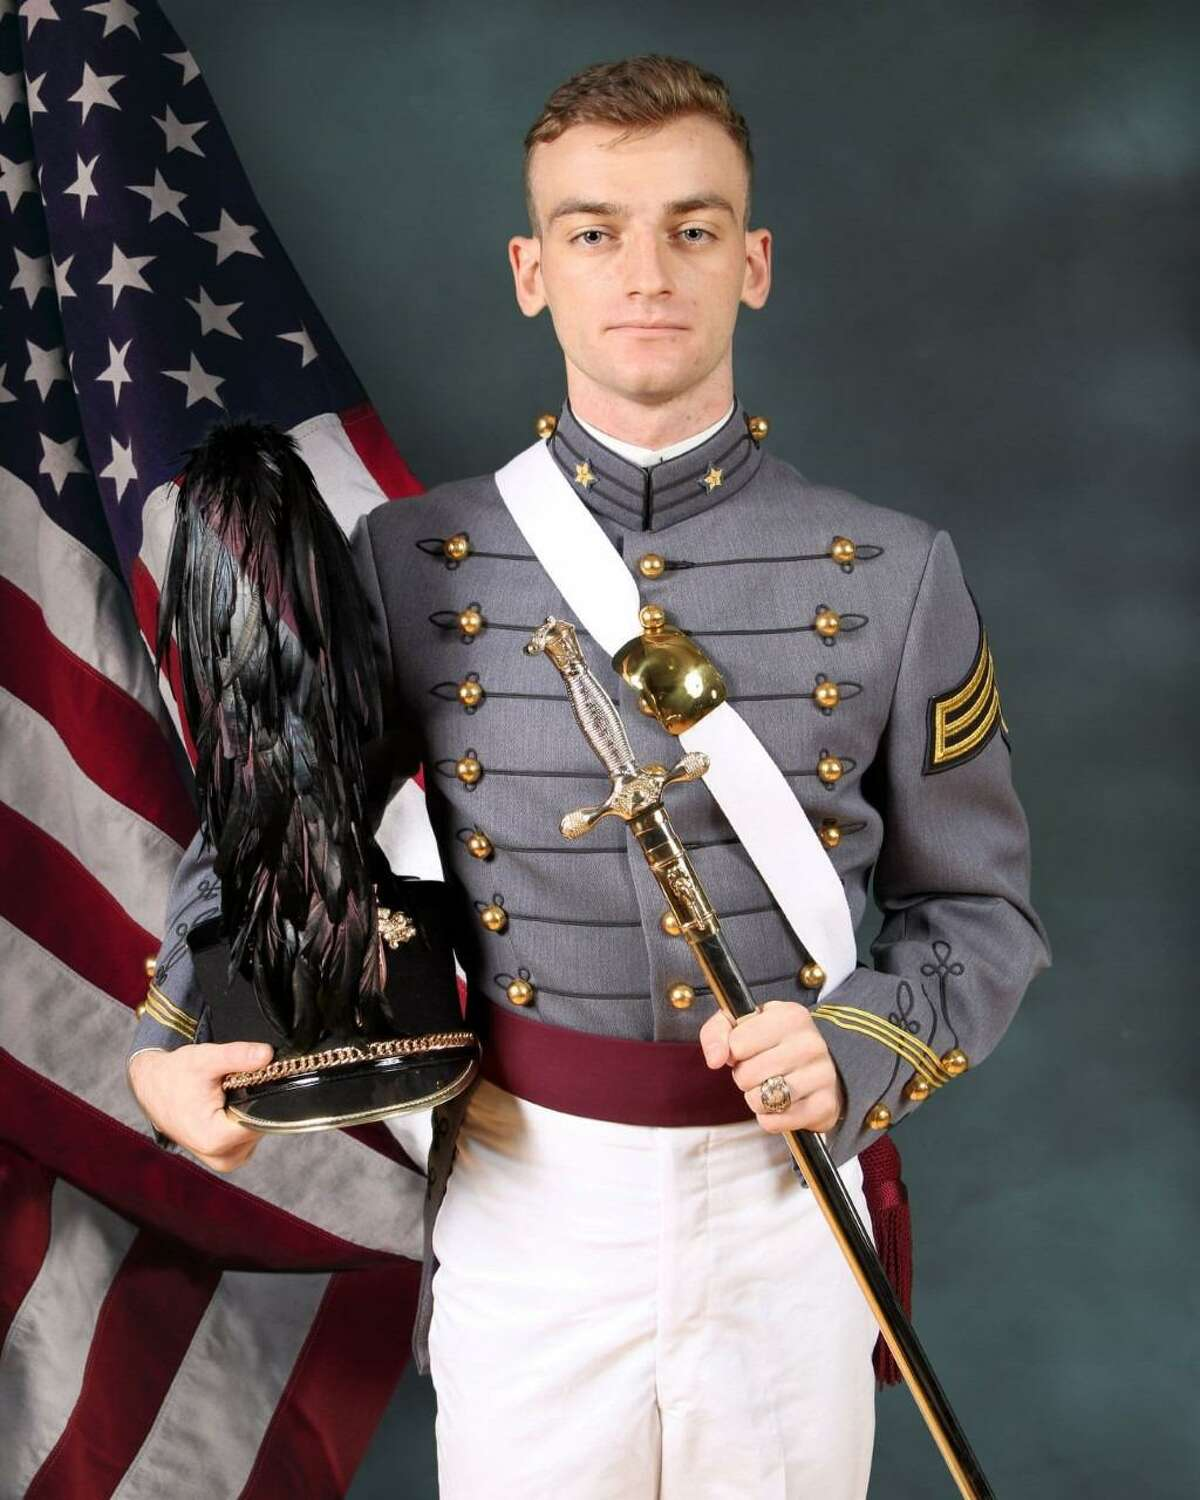 Cadet Joseph S. Waldron, who is the son of Brian, and Christine Waldron of Danbury, recently graduated from the U.S. Military Academy, West Point, on Saturday, May 22.